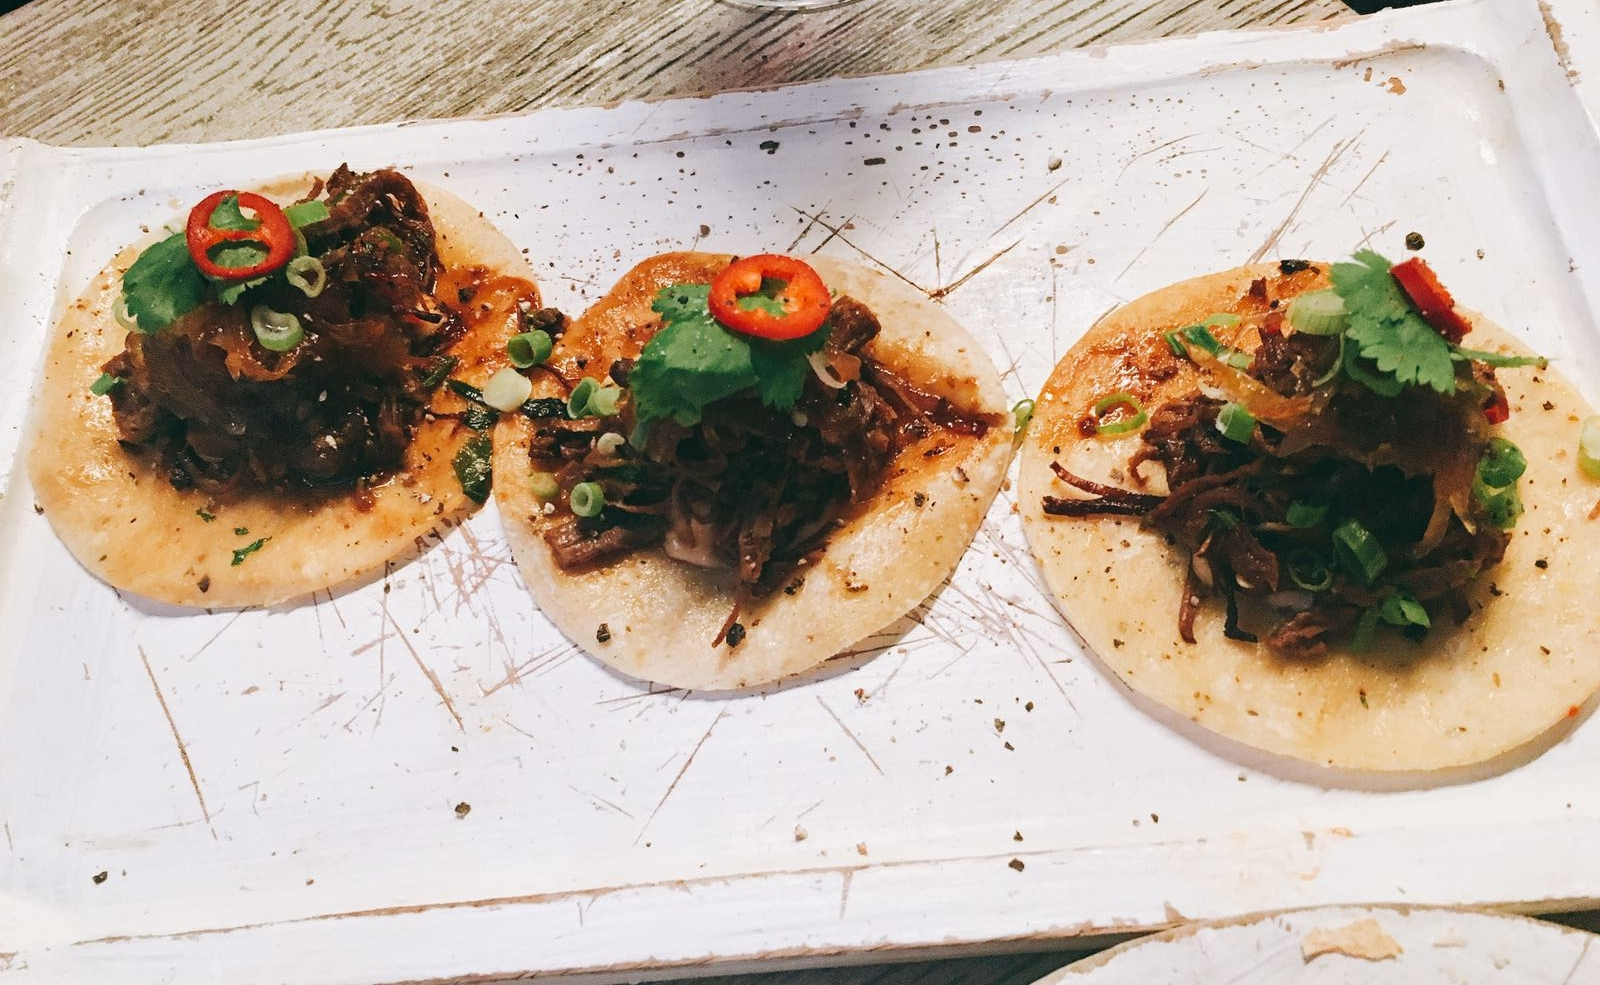 Tacos - No197 Chiswick Fire Station review